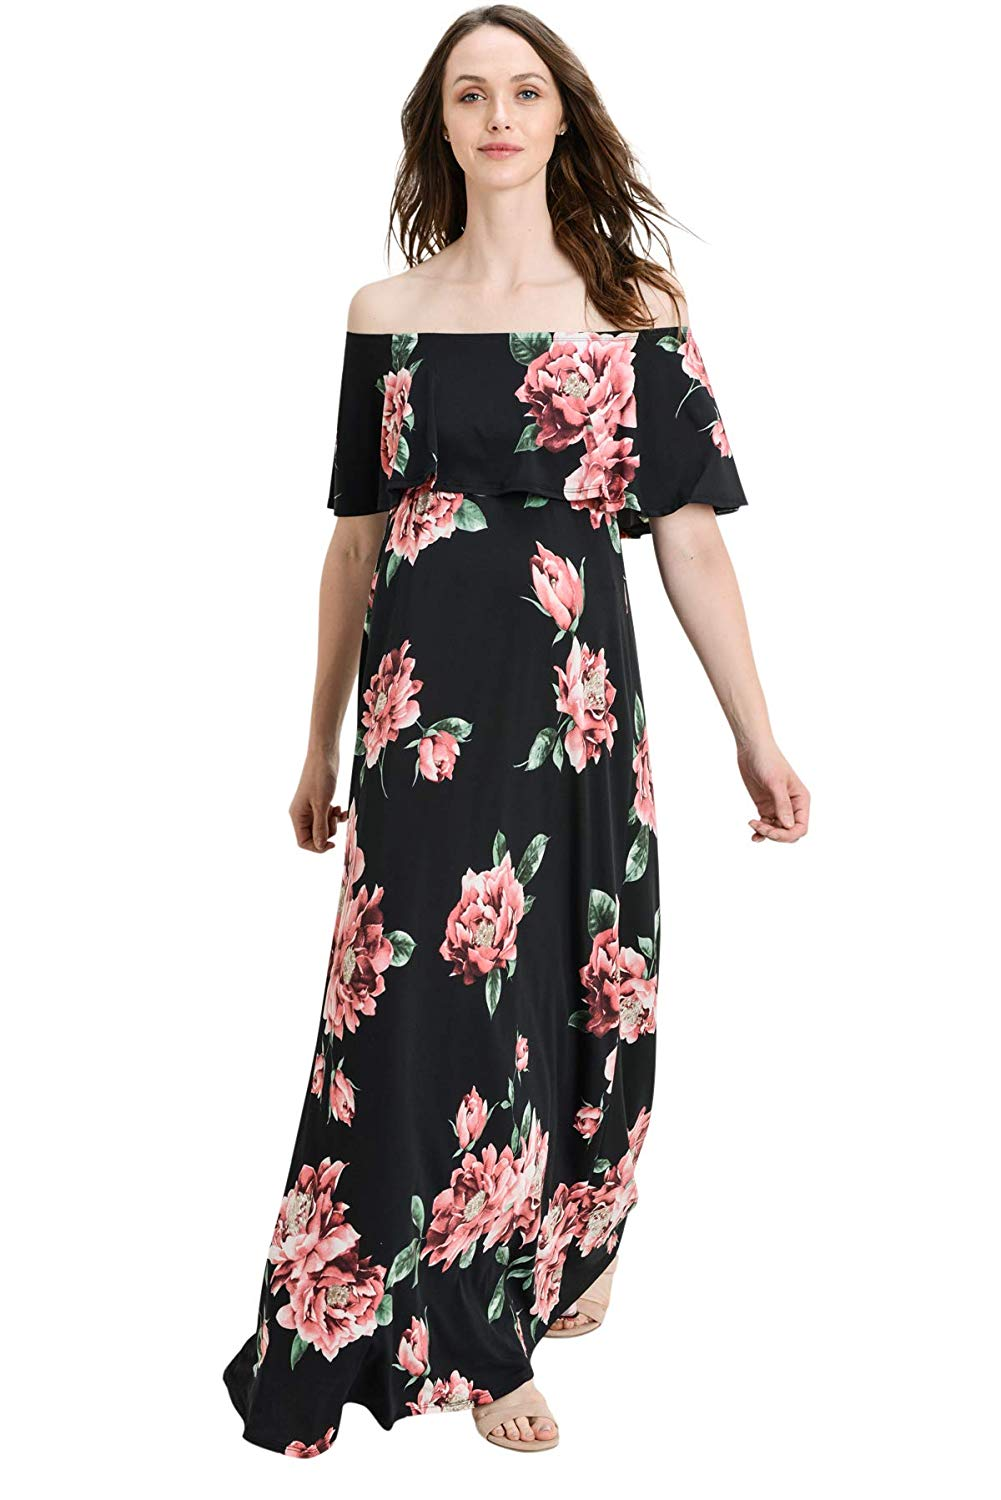 Floral Off The Shoulder Maxi Maternity Dress - Mommylicious